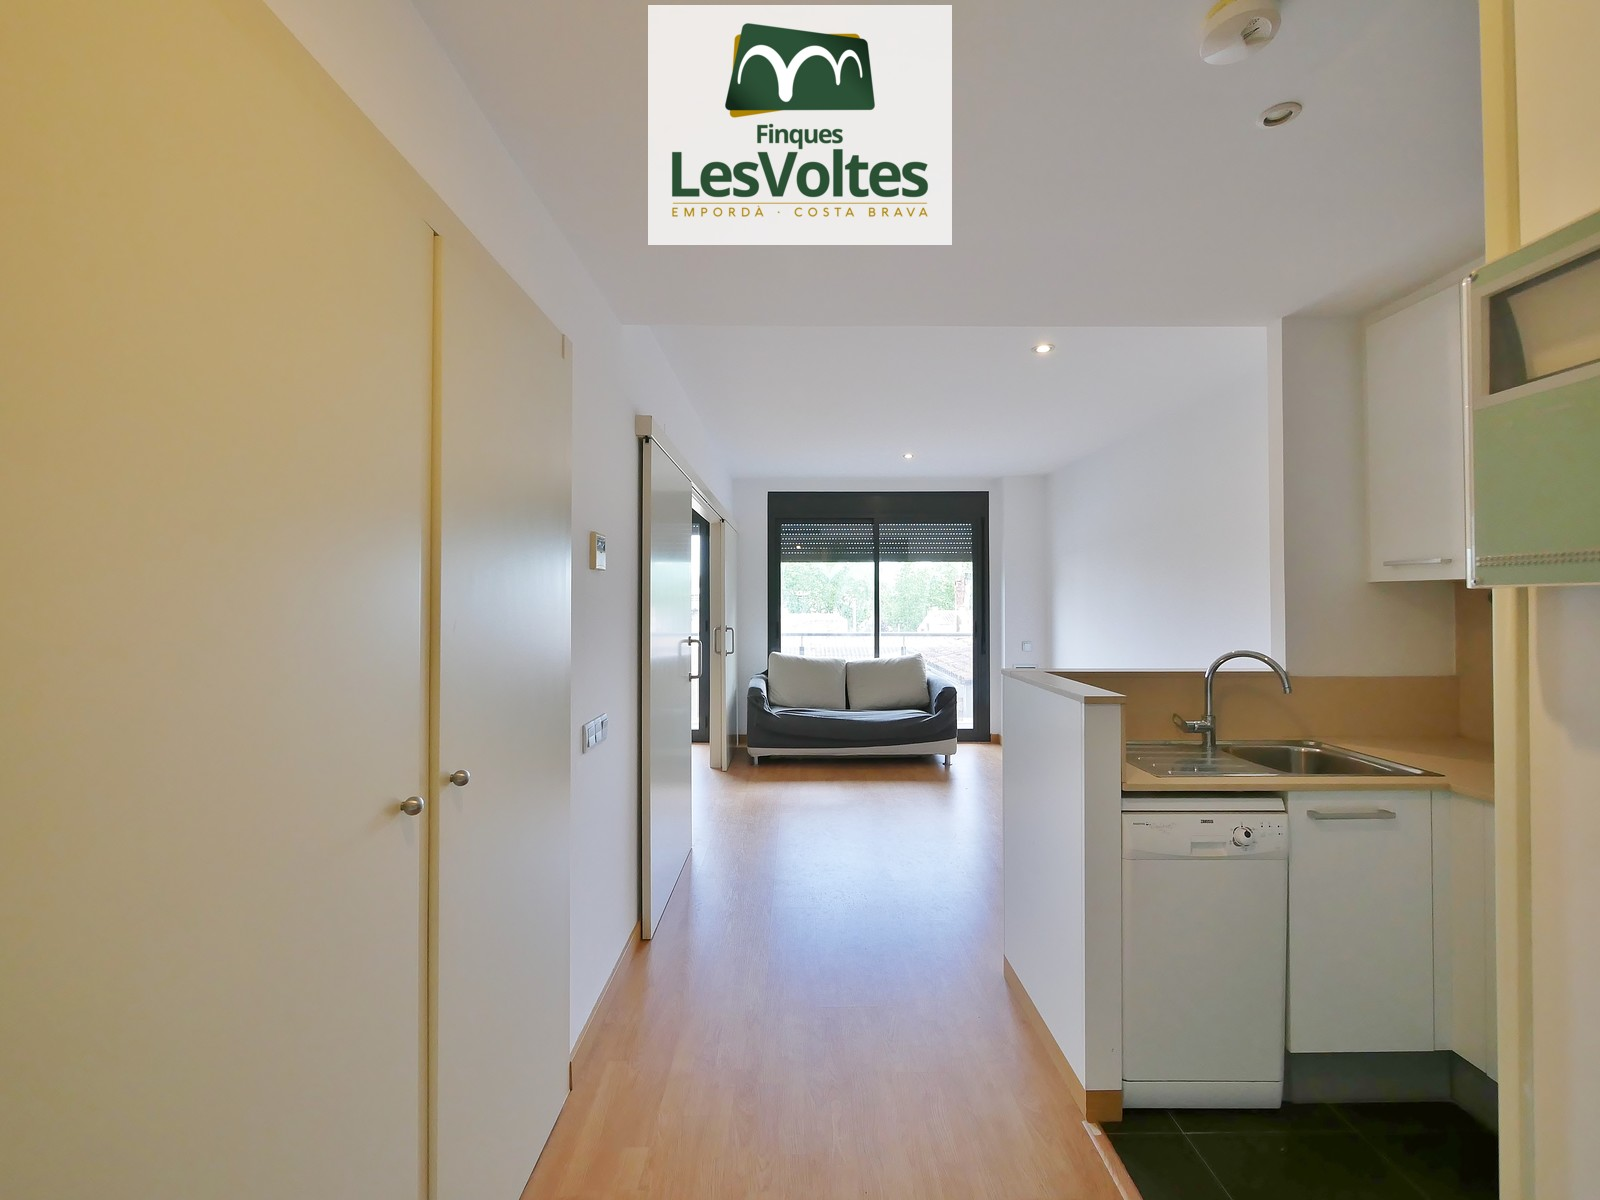 1 BEDROOM APARTMENT FOR RENT IN THE CENTER OF PALAFRUGELL EQUIPPED WITH APPLIANCES. PARKING AND STORAGE ROOM INCLUDED.